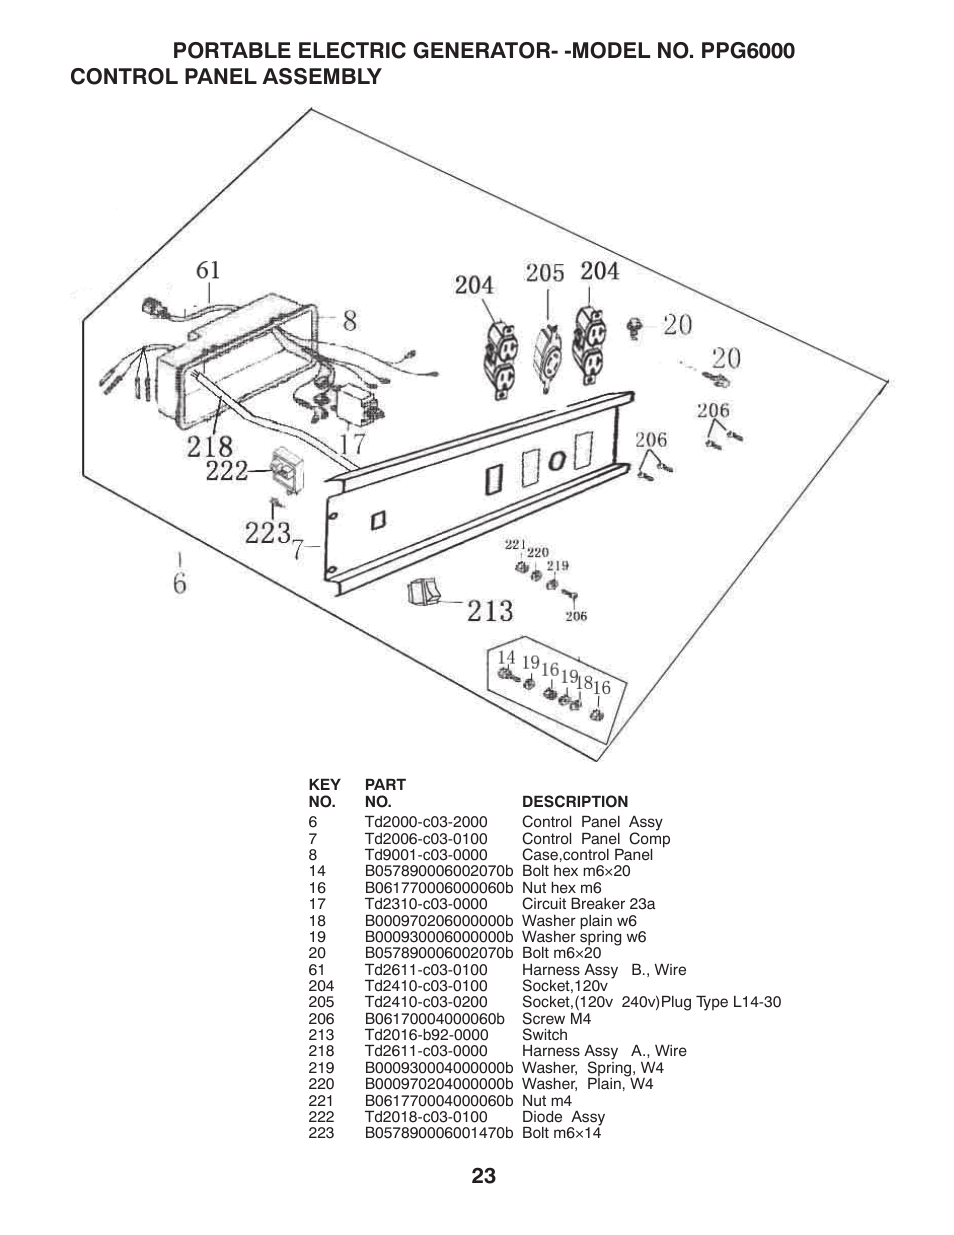 Poulan Pro Ppg6000 Wiring Diagram Schematics For Mower Ppg 6000 User Manual Page 23 32